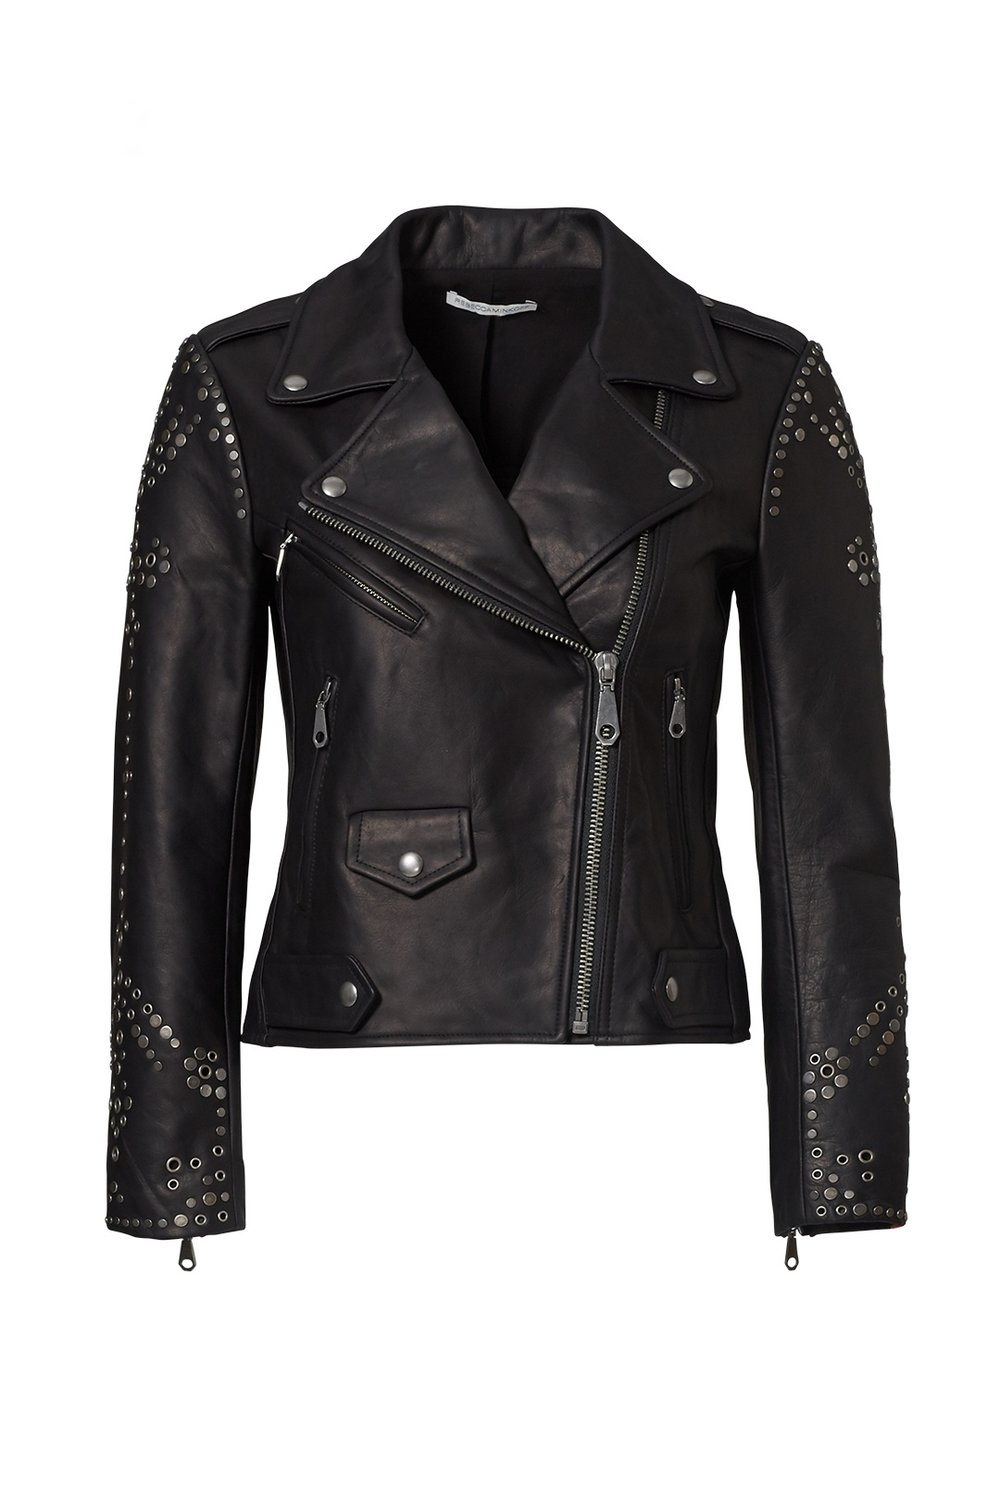 Rebecca Minkoff Studded Leather Jacket from Rent the Runway